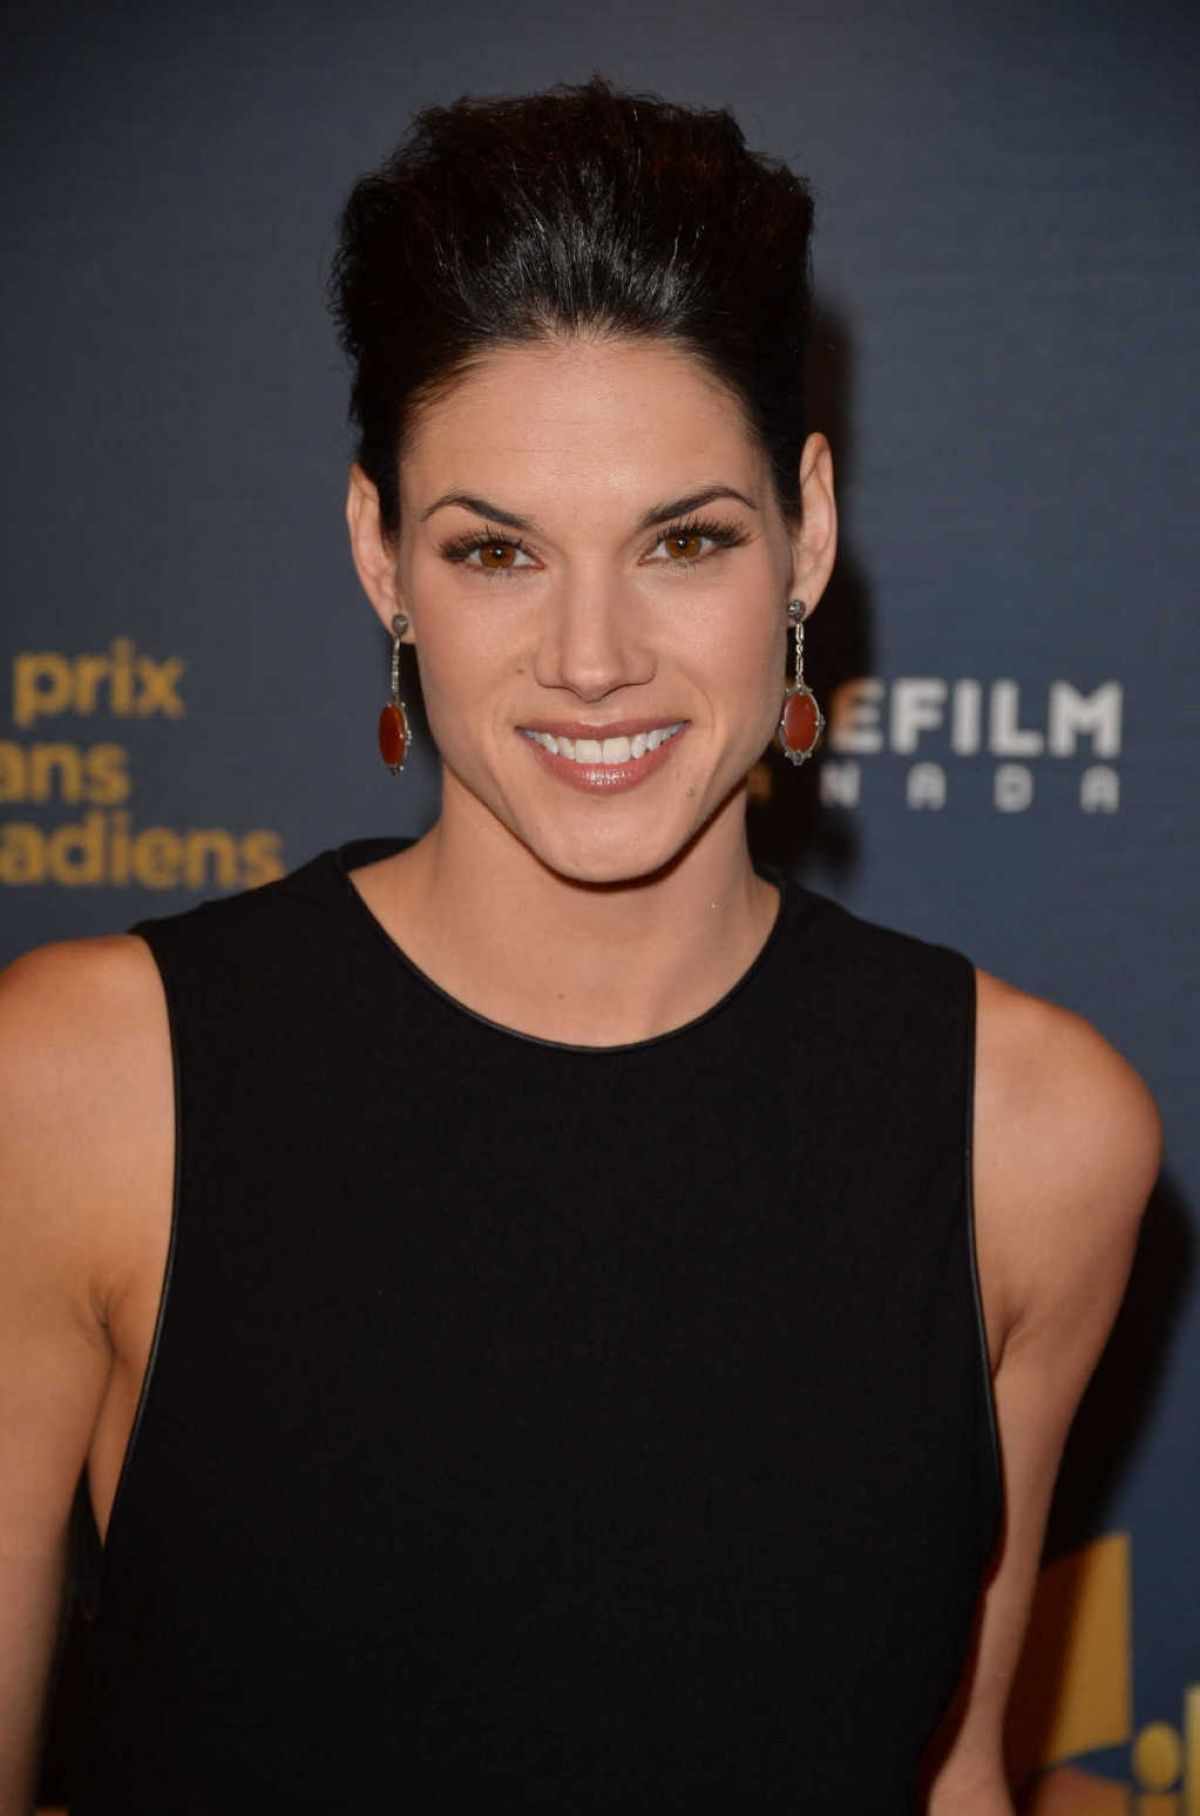 MISSY PEREGRYM at 2014 Canadian Screen Awards in Toronto